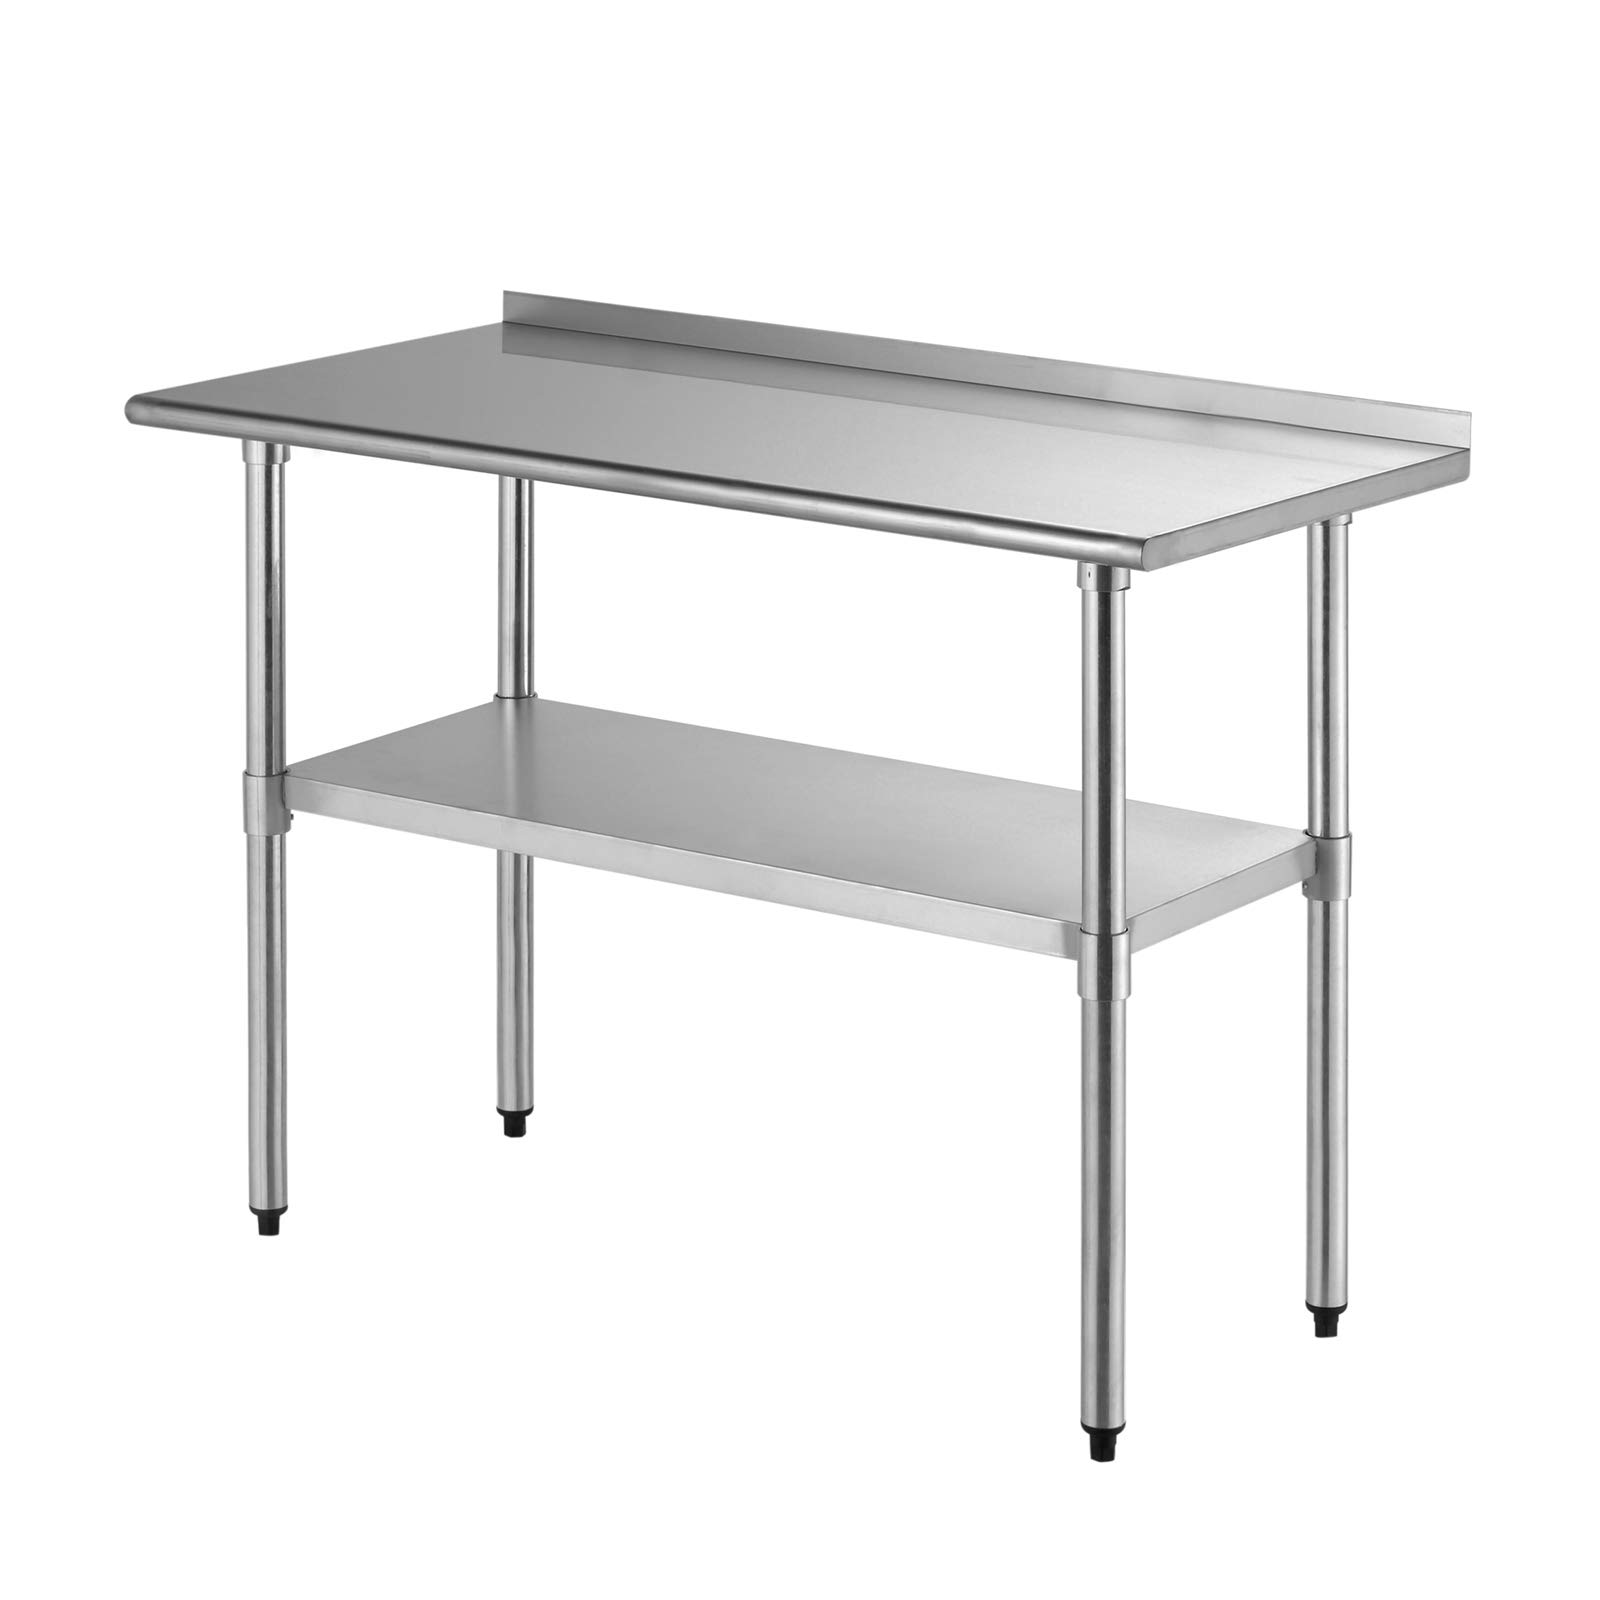 Suncoo Commercial Stainless Steel Work Food Prep Table And